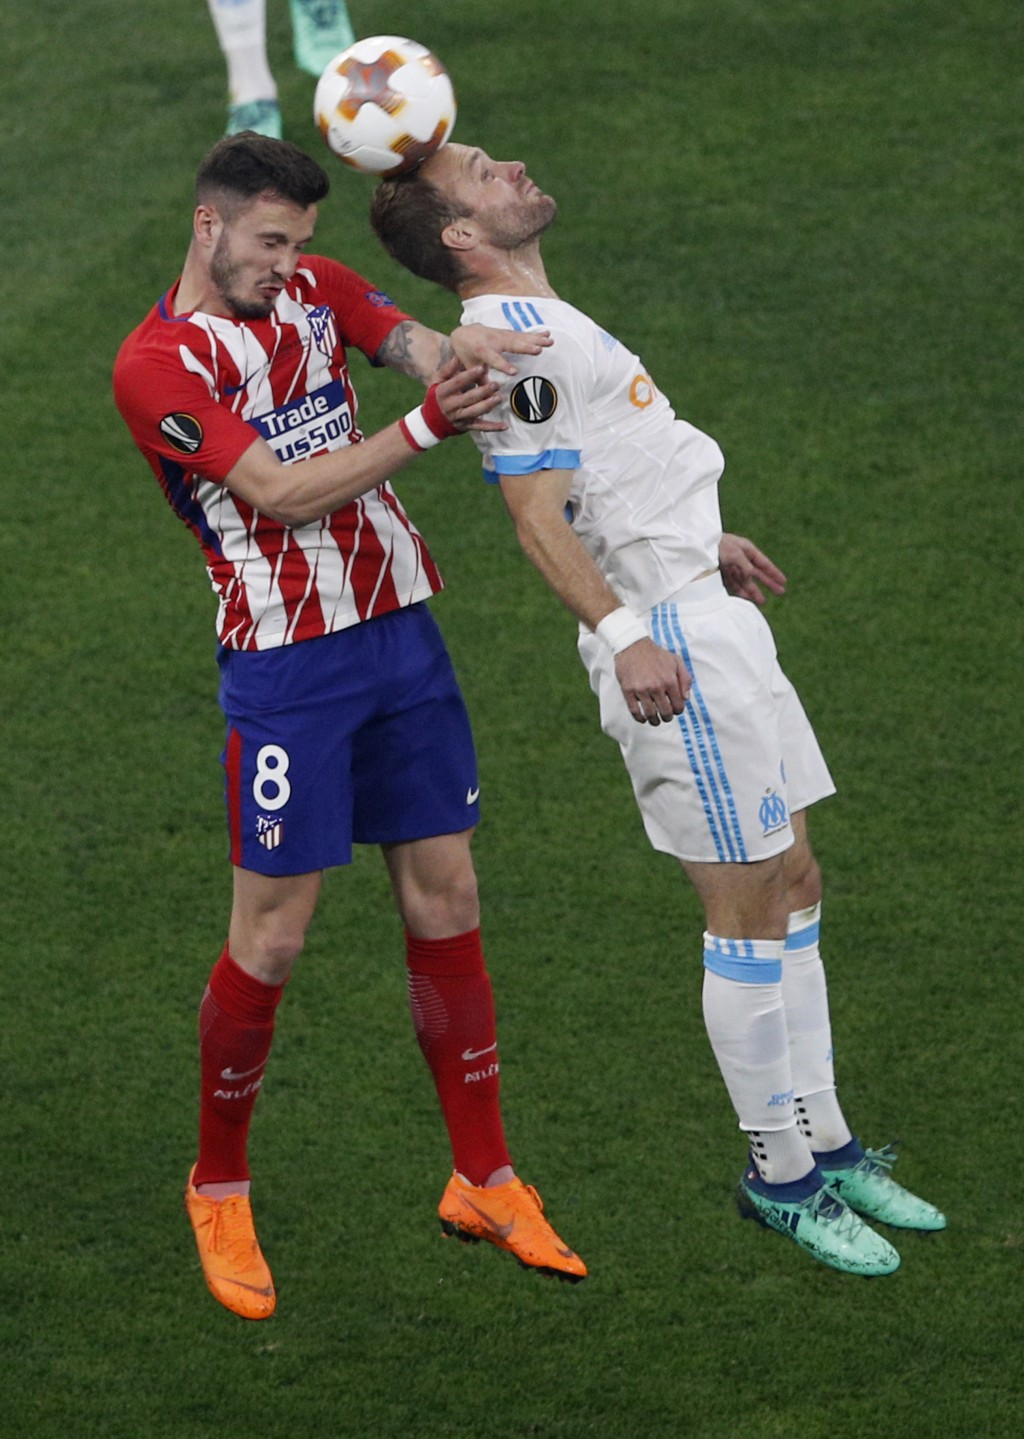 Atletico's Saul Niguez, left, fights to head the ball with Marseille's Valere Germain during the Europa League Final soccer match between Marseille an